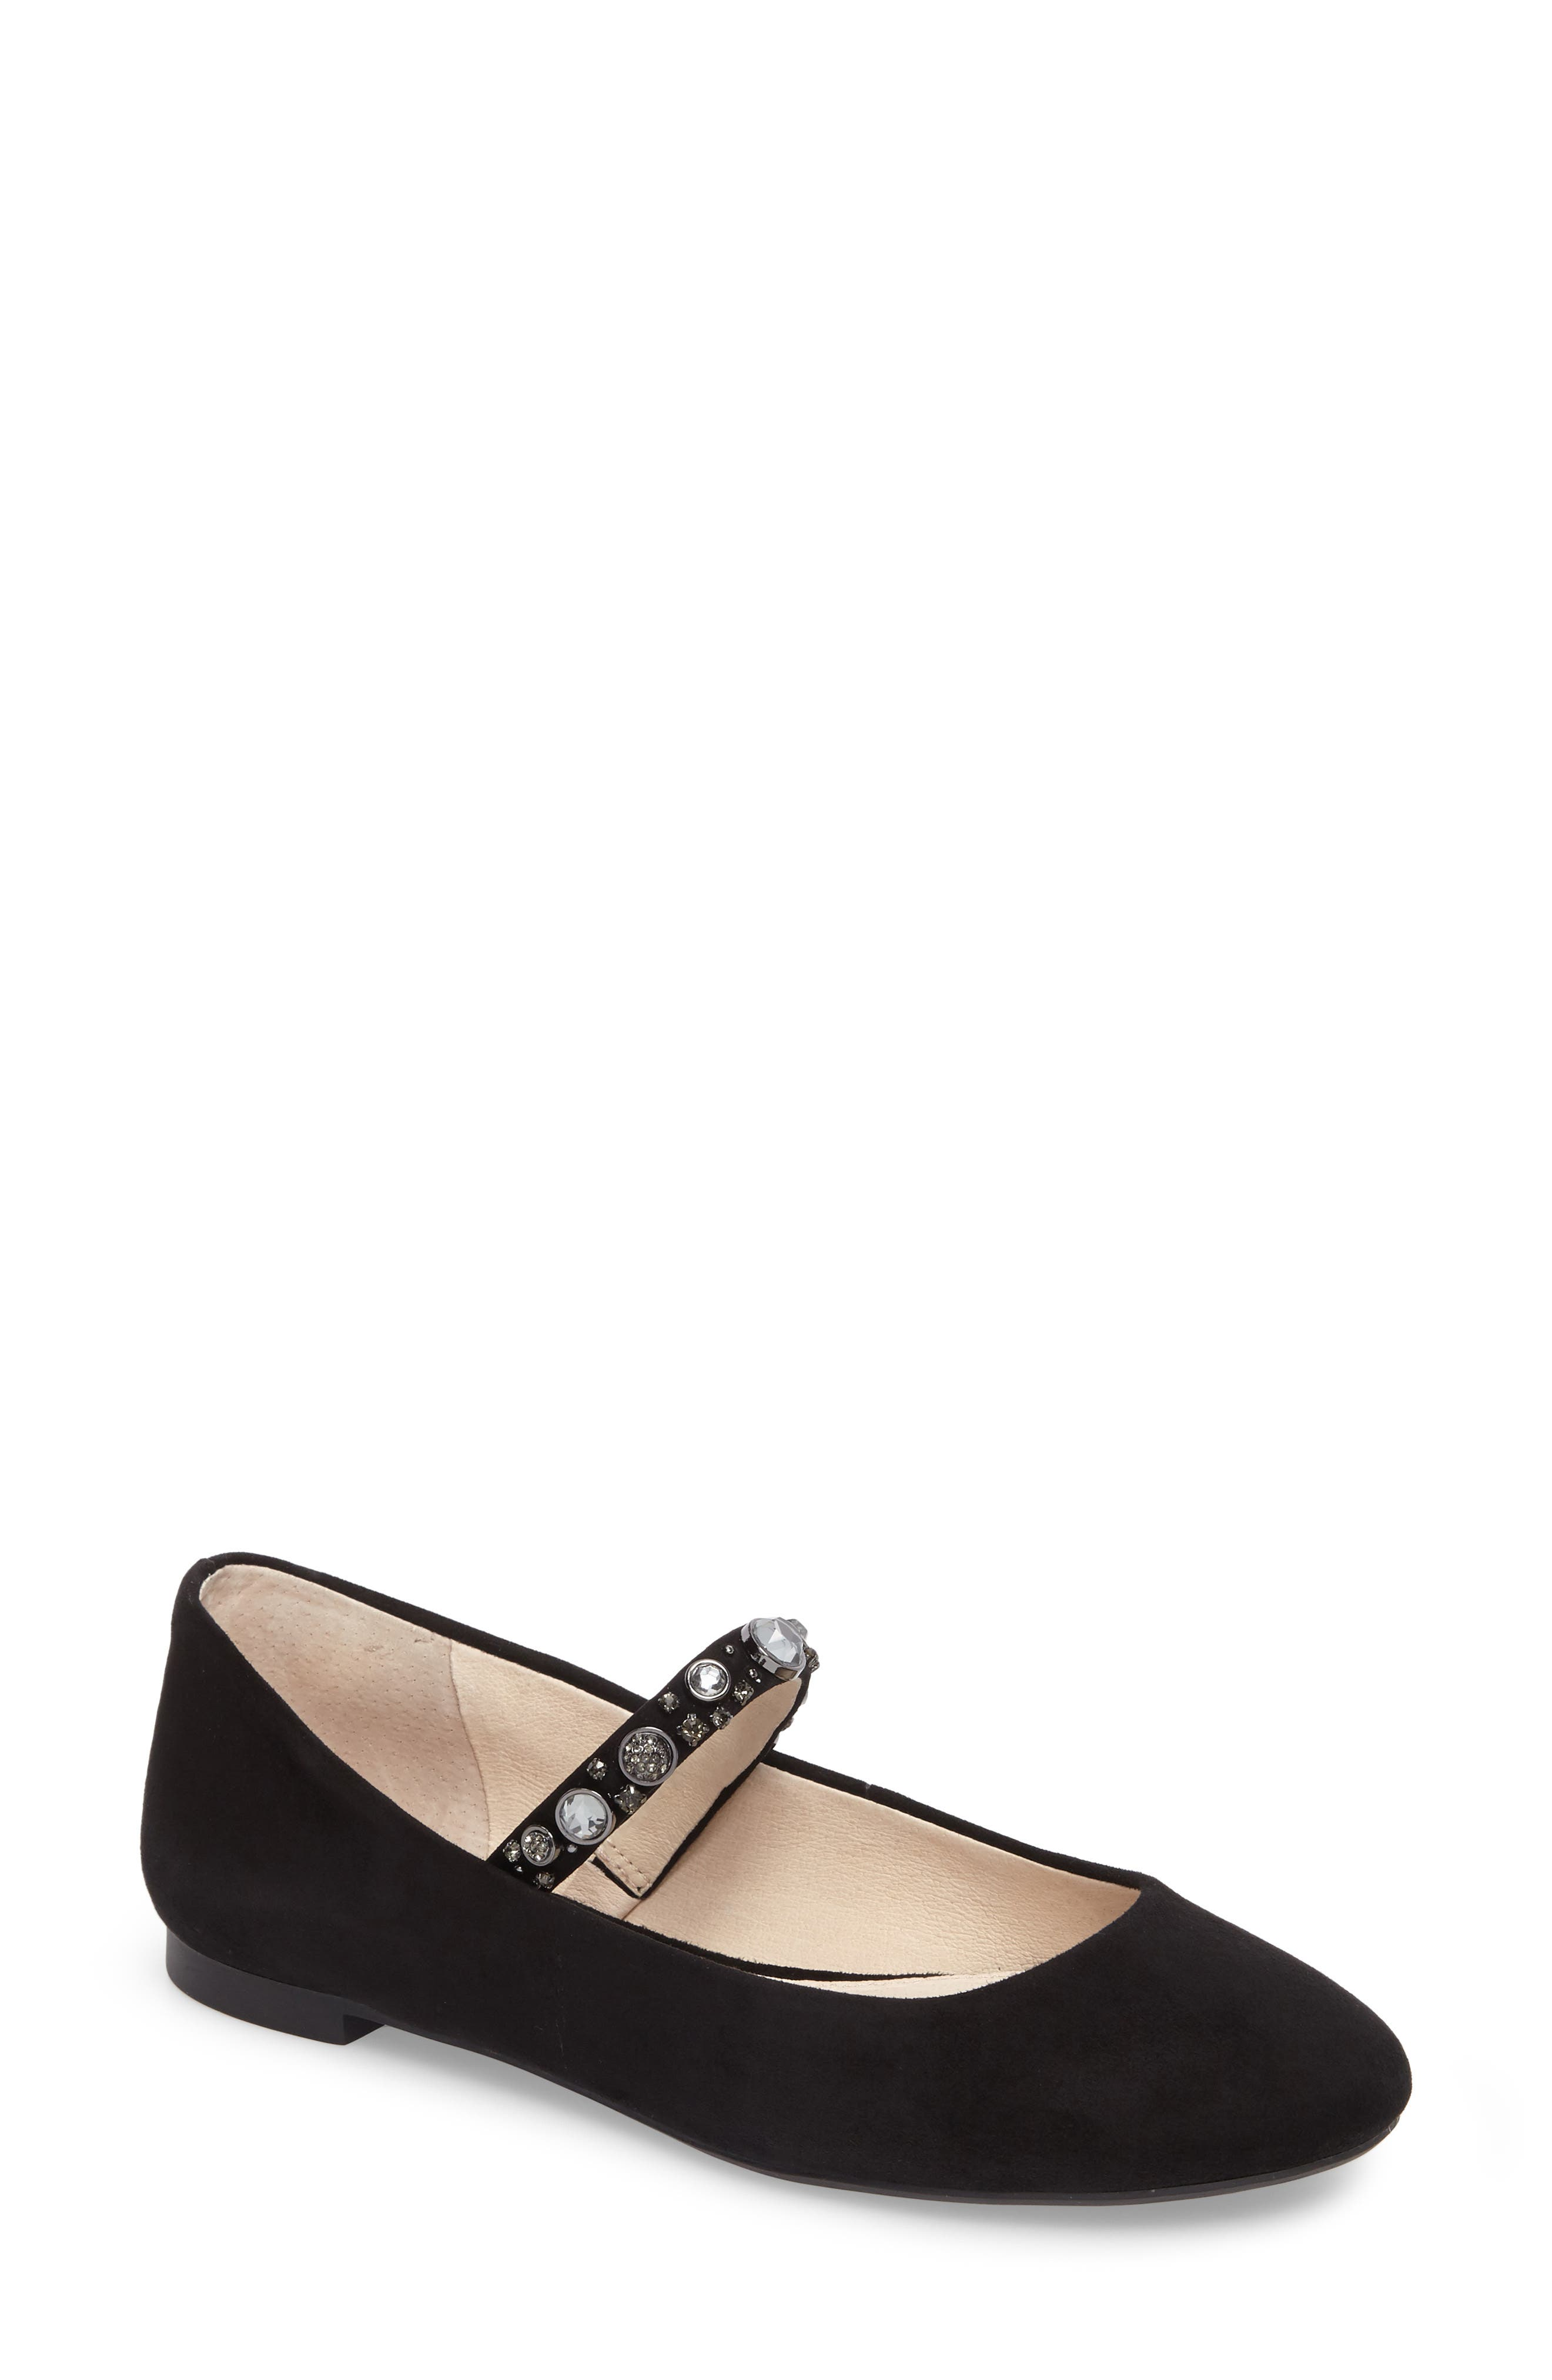 Casa Mary Jane Flat,                         Main,                         color, Black Suede